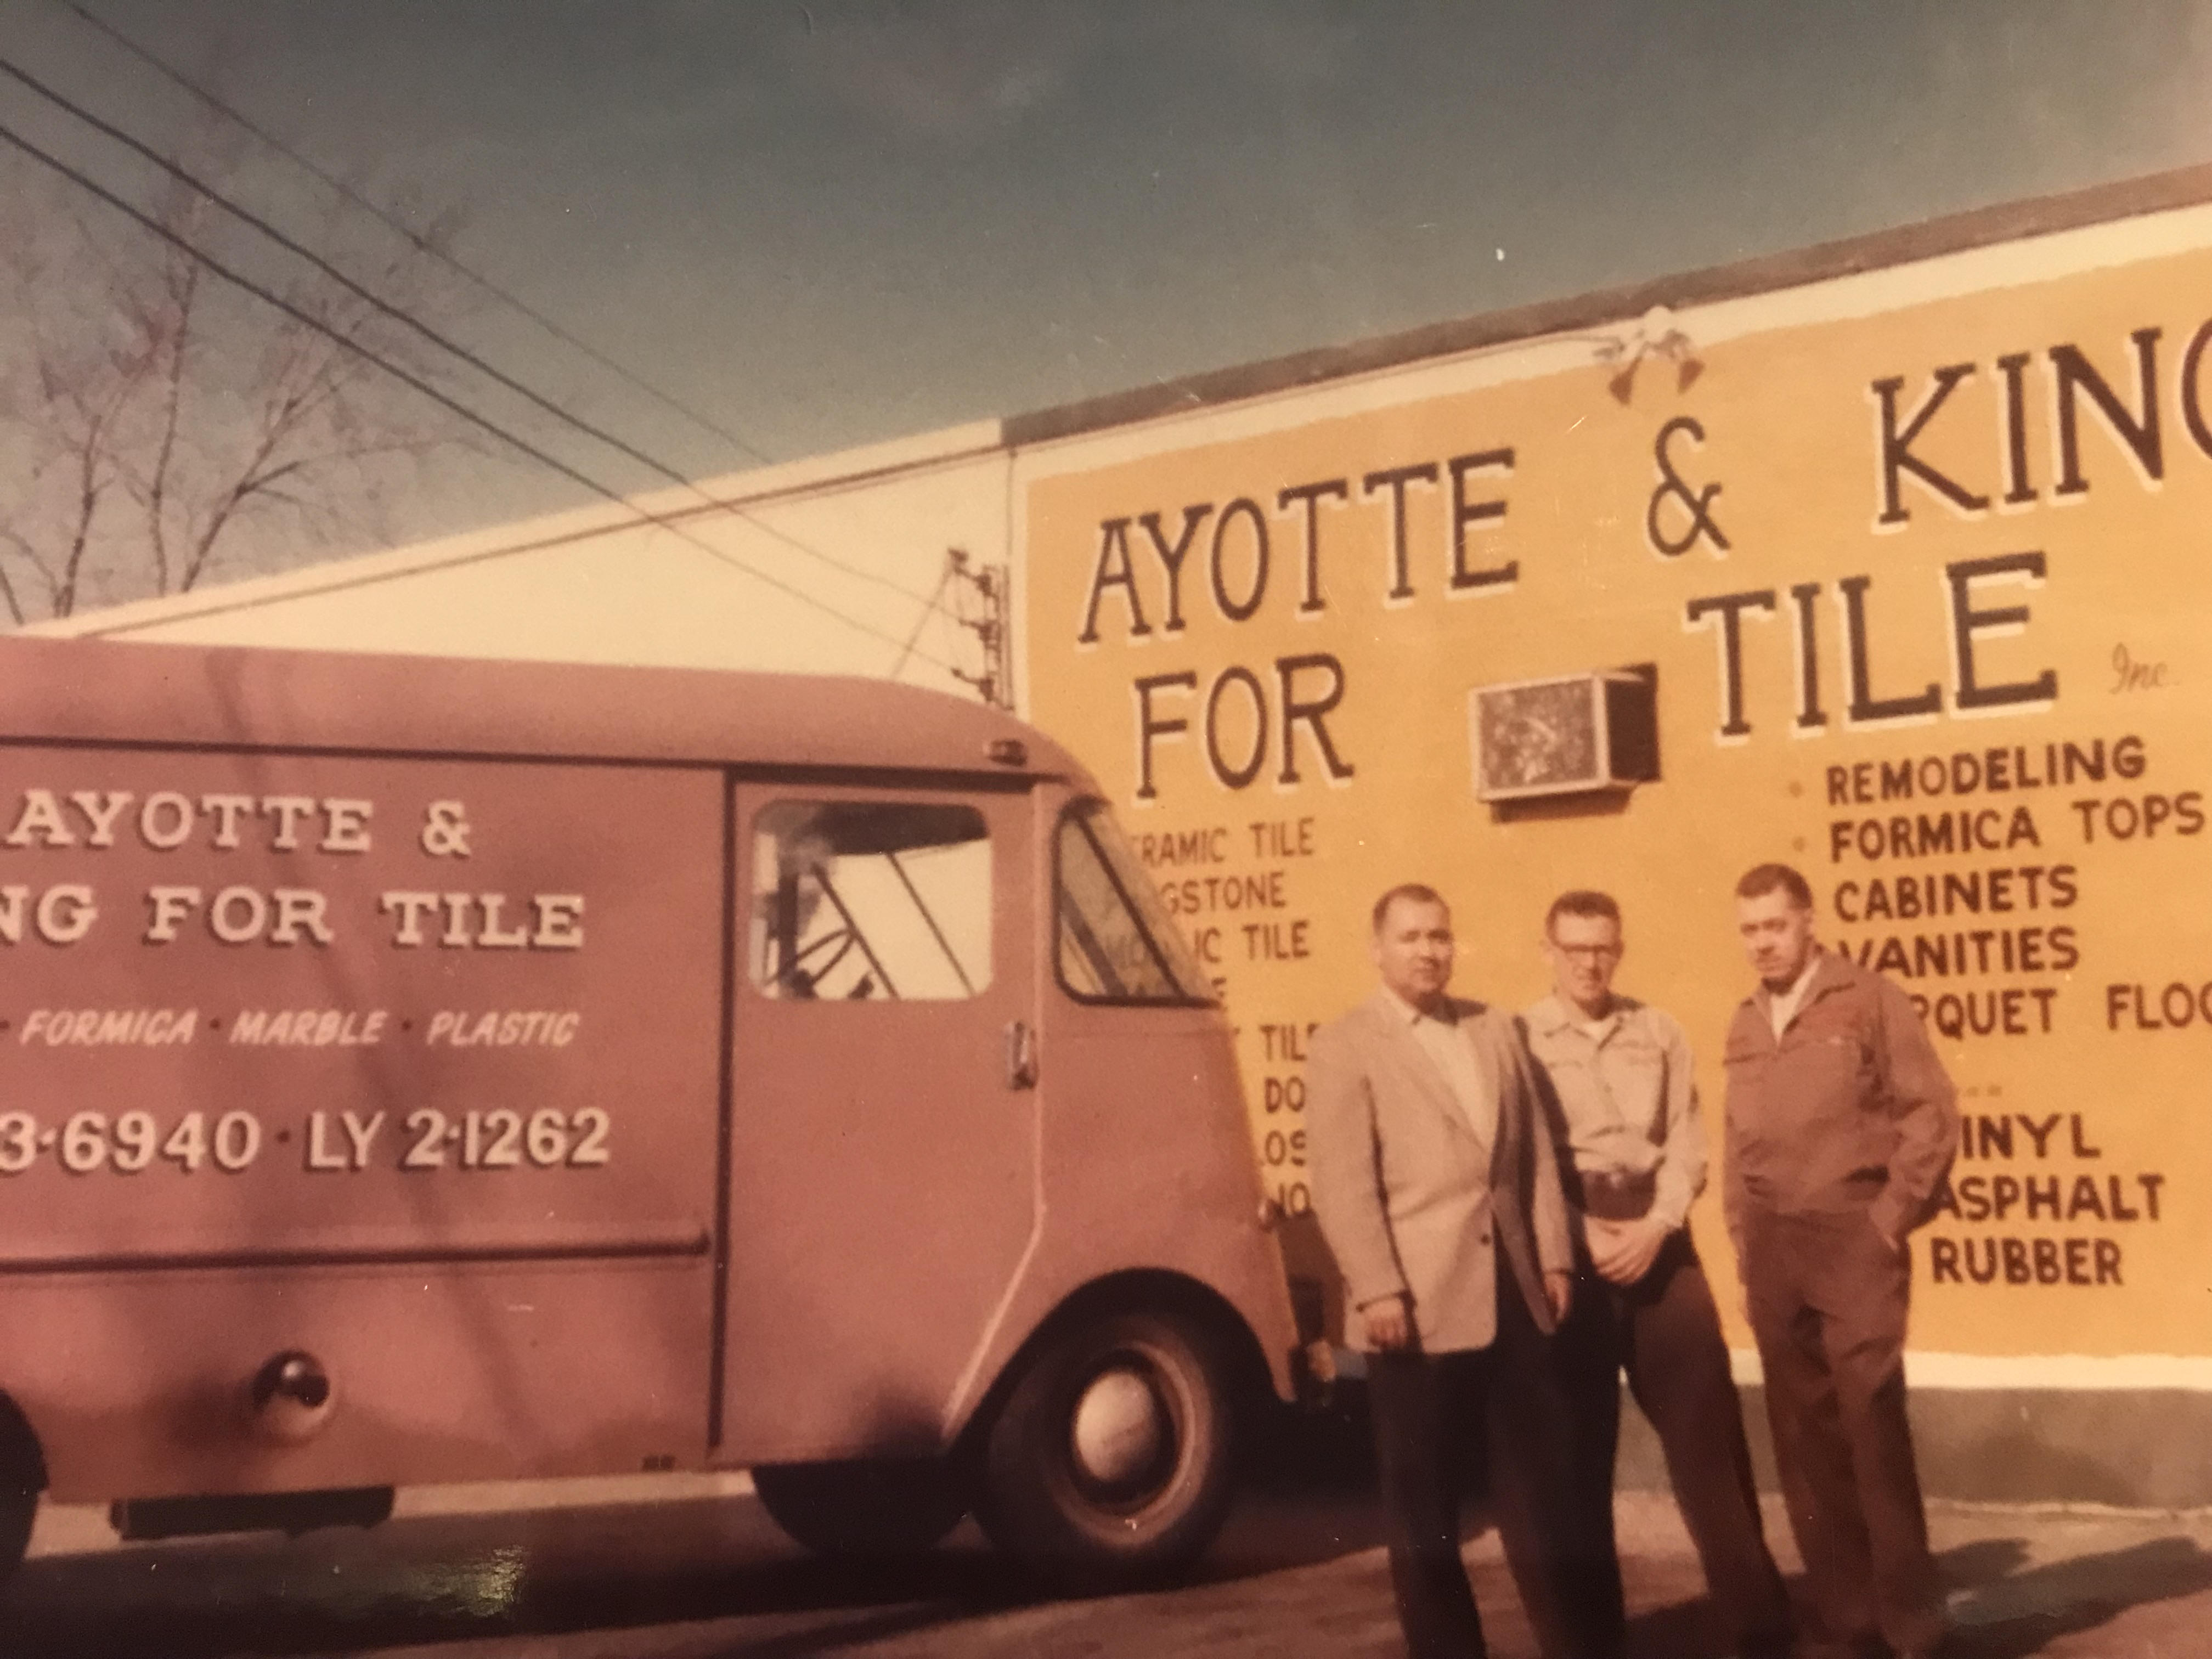 Ayottes king in front of old van